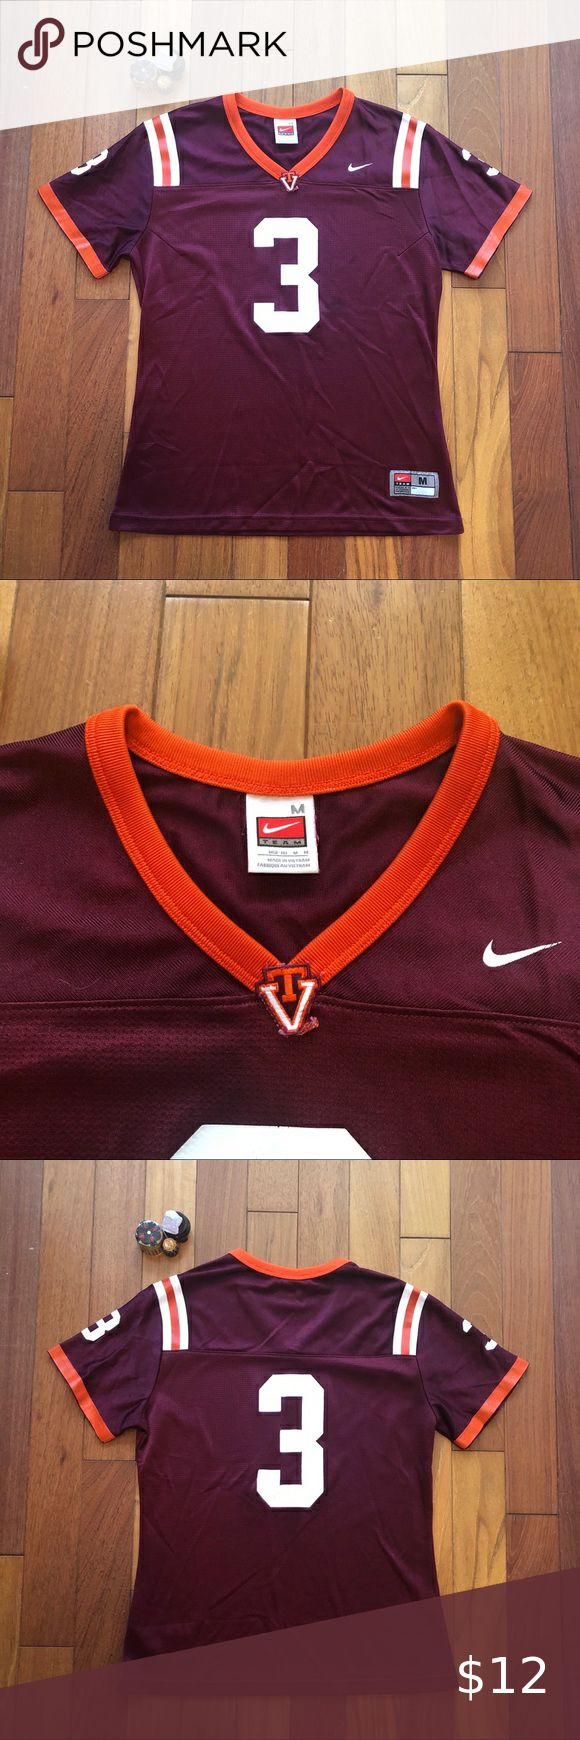 Virginia Tech Football Jersey Excellent condition! Great